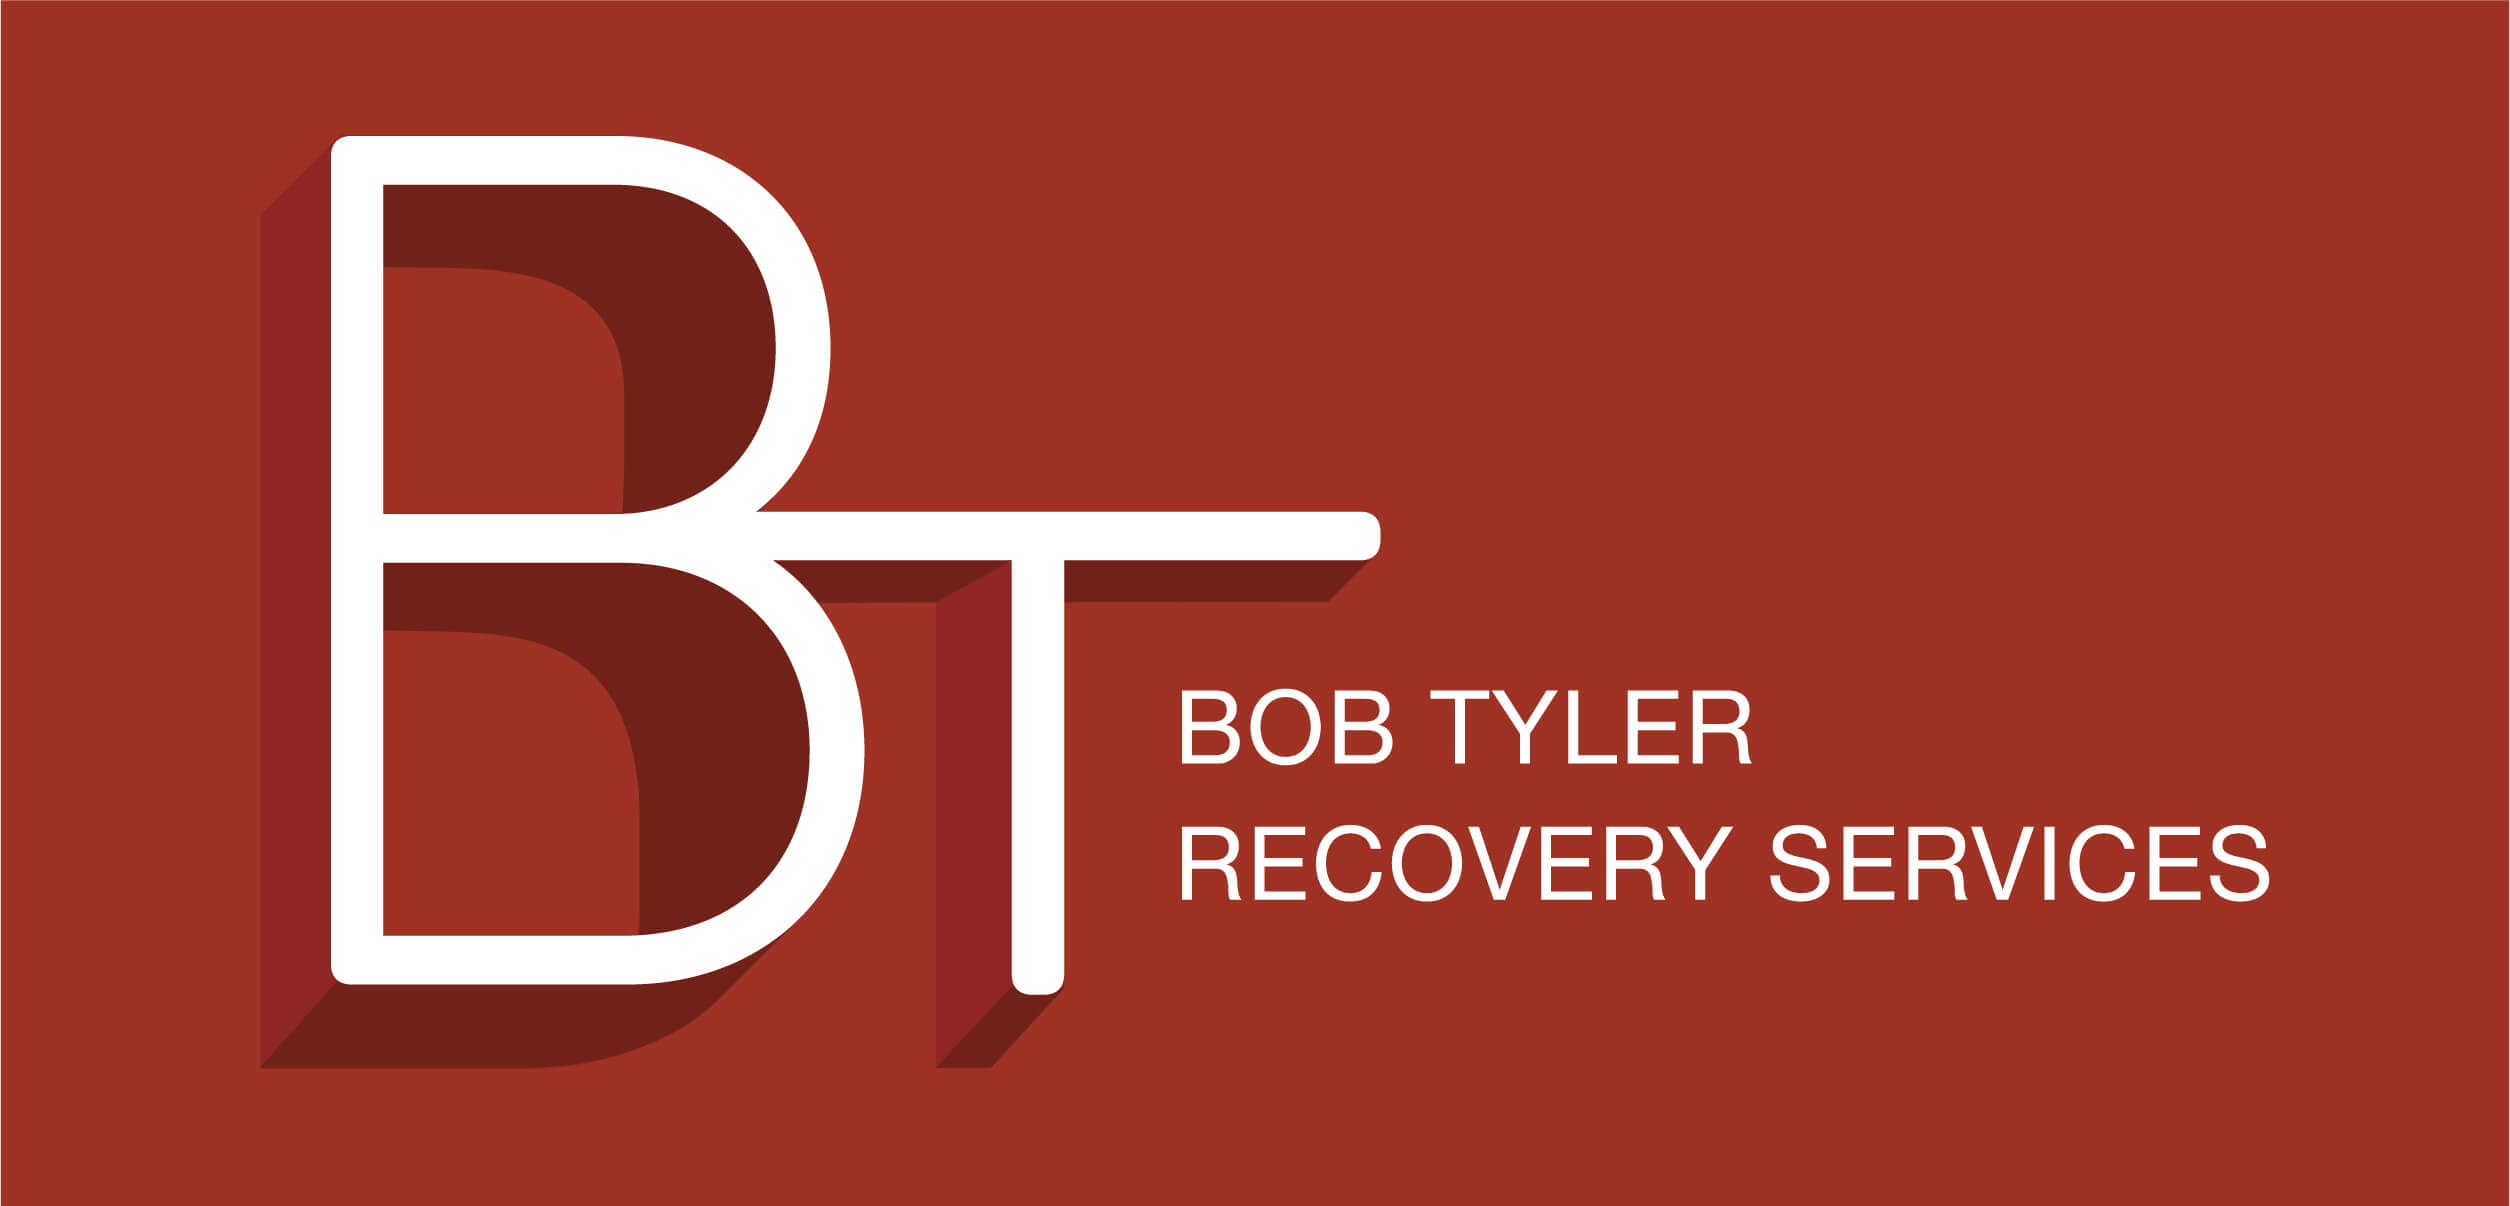 Bob Tyler Recovery Services Logo